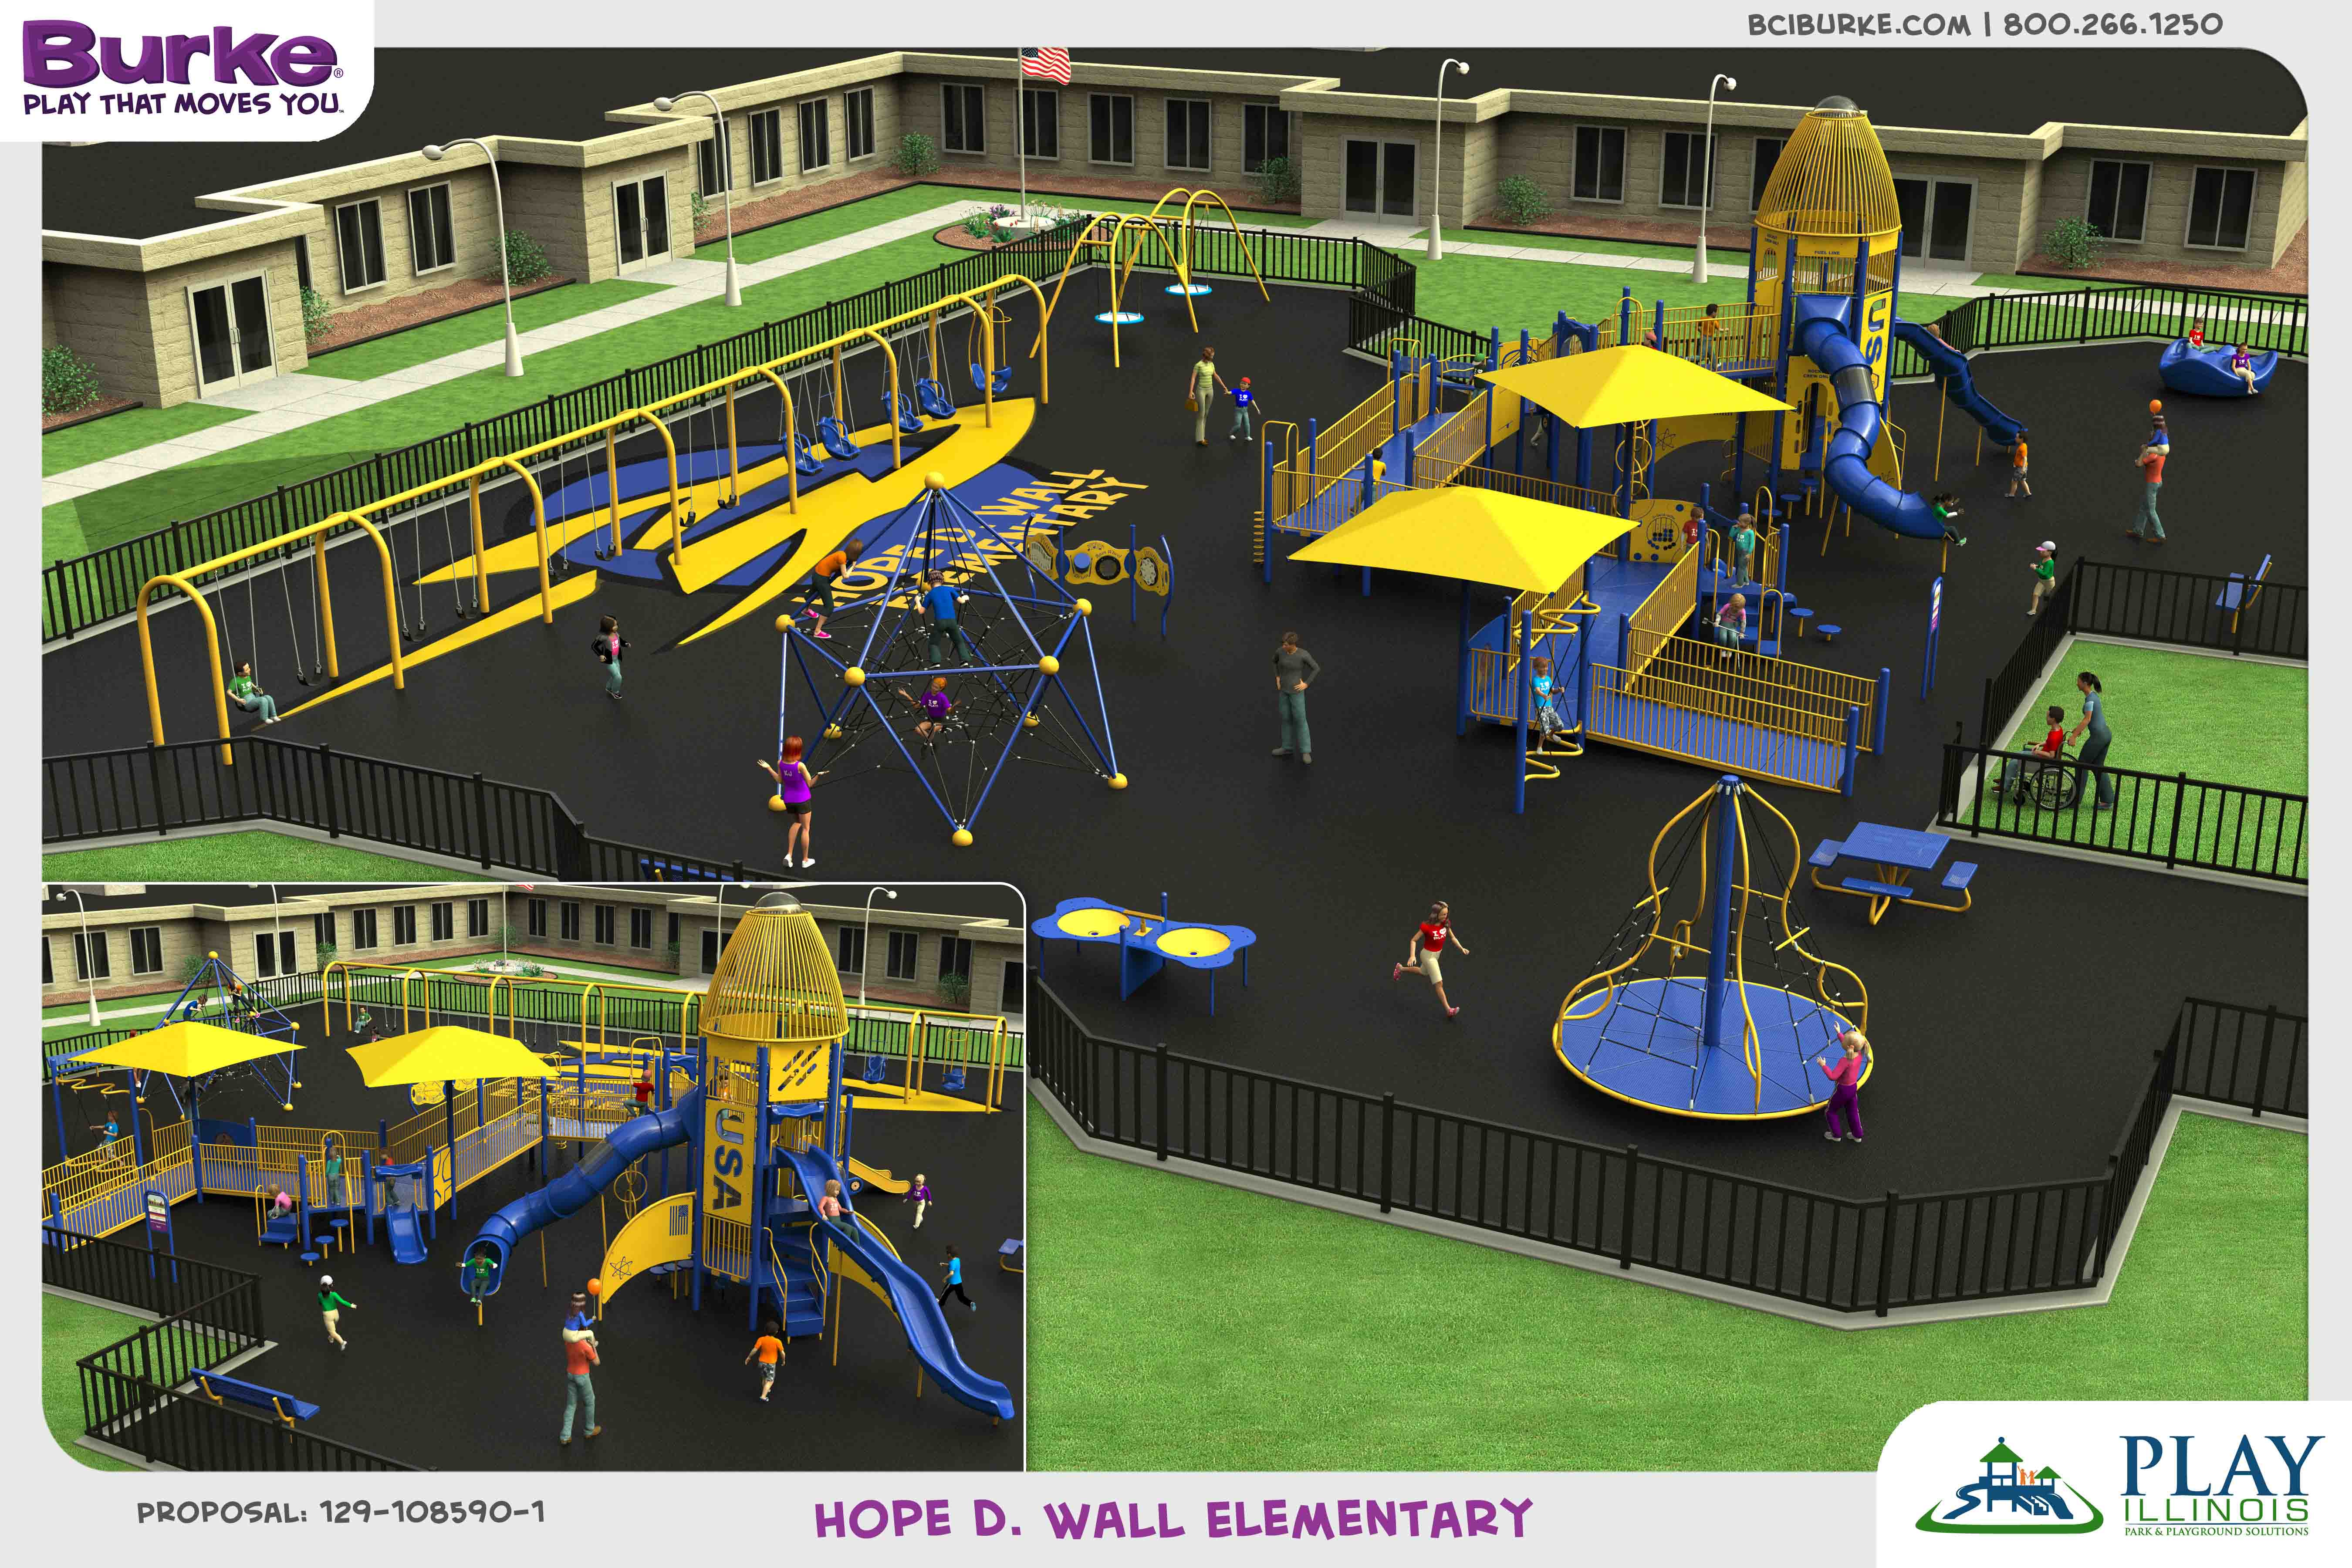 HopeDWall dream build play experience accessible playgrounds